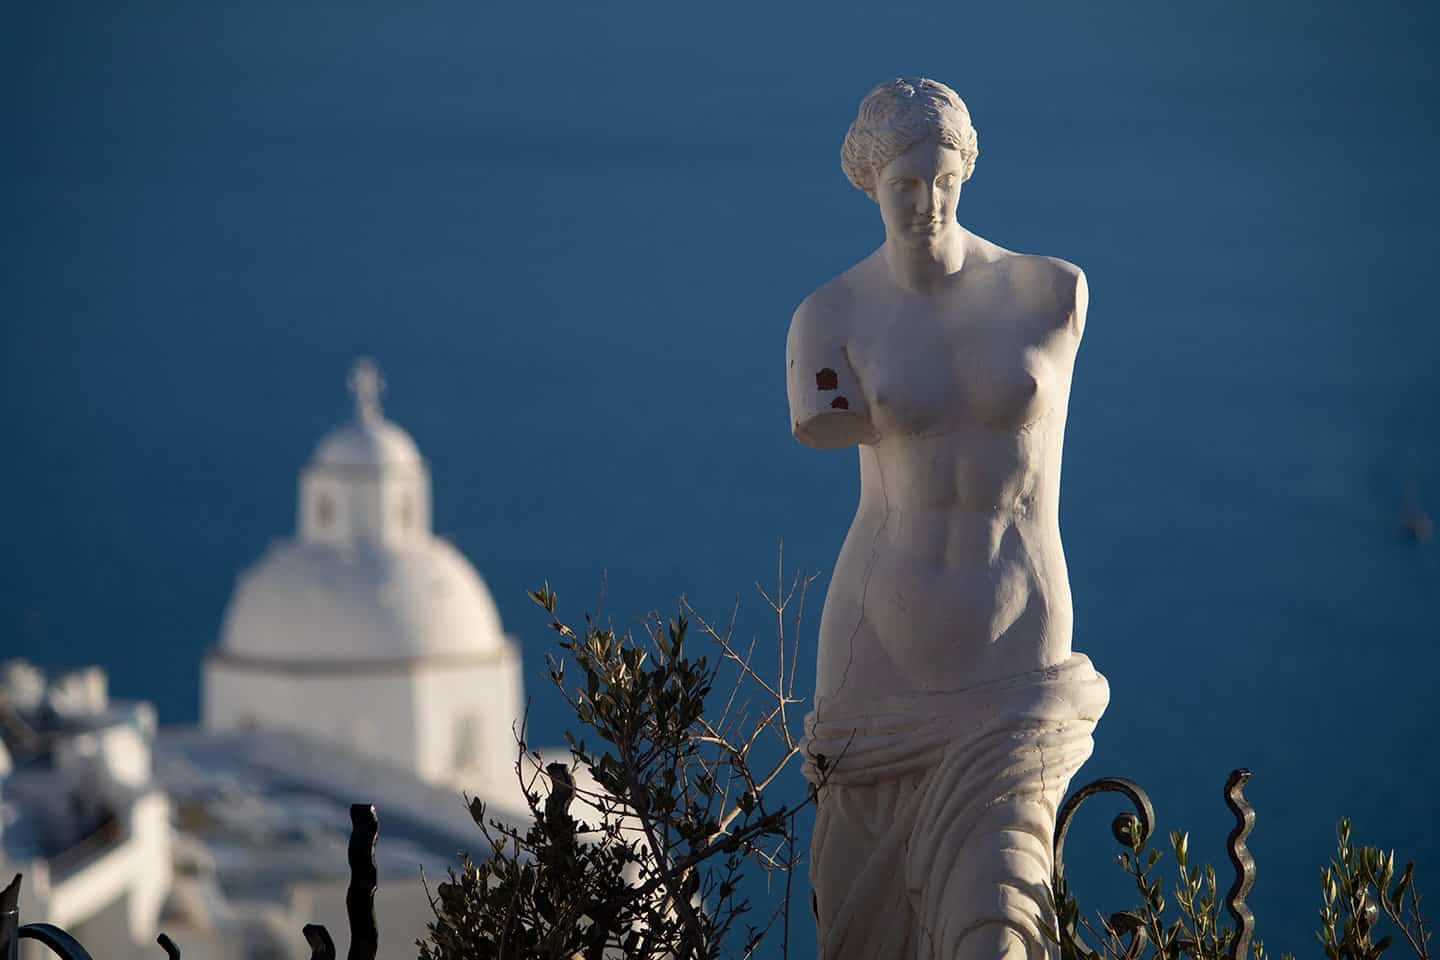 Image of a statue in a cafe in Fira Santorini with a church dome and sea in the background